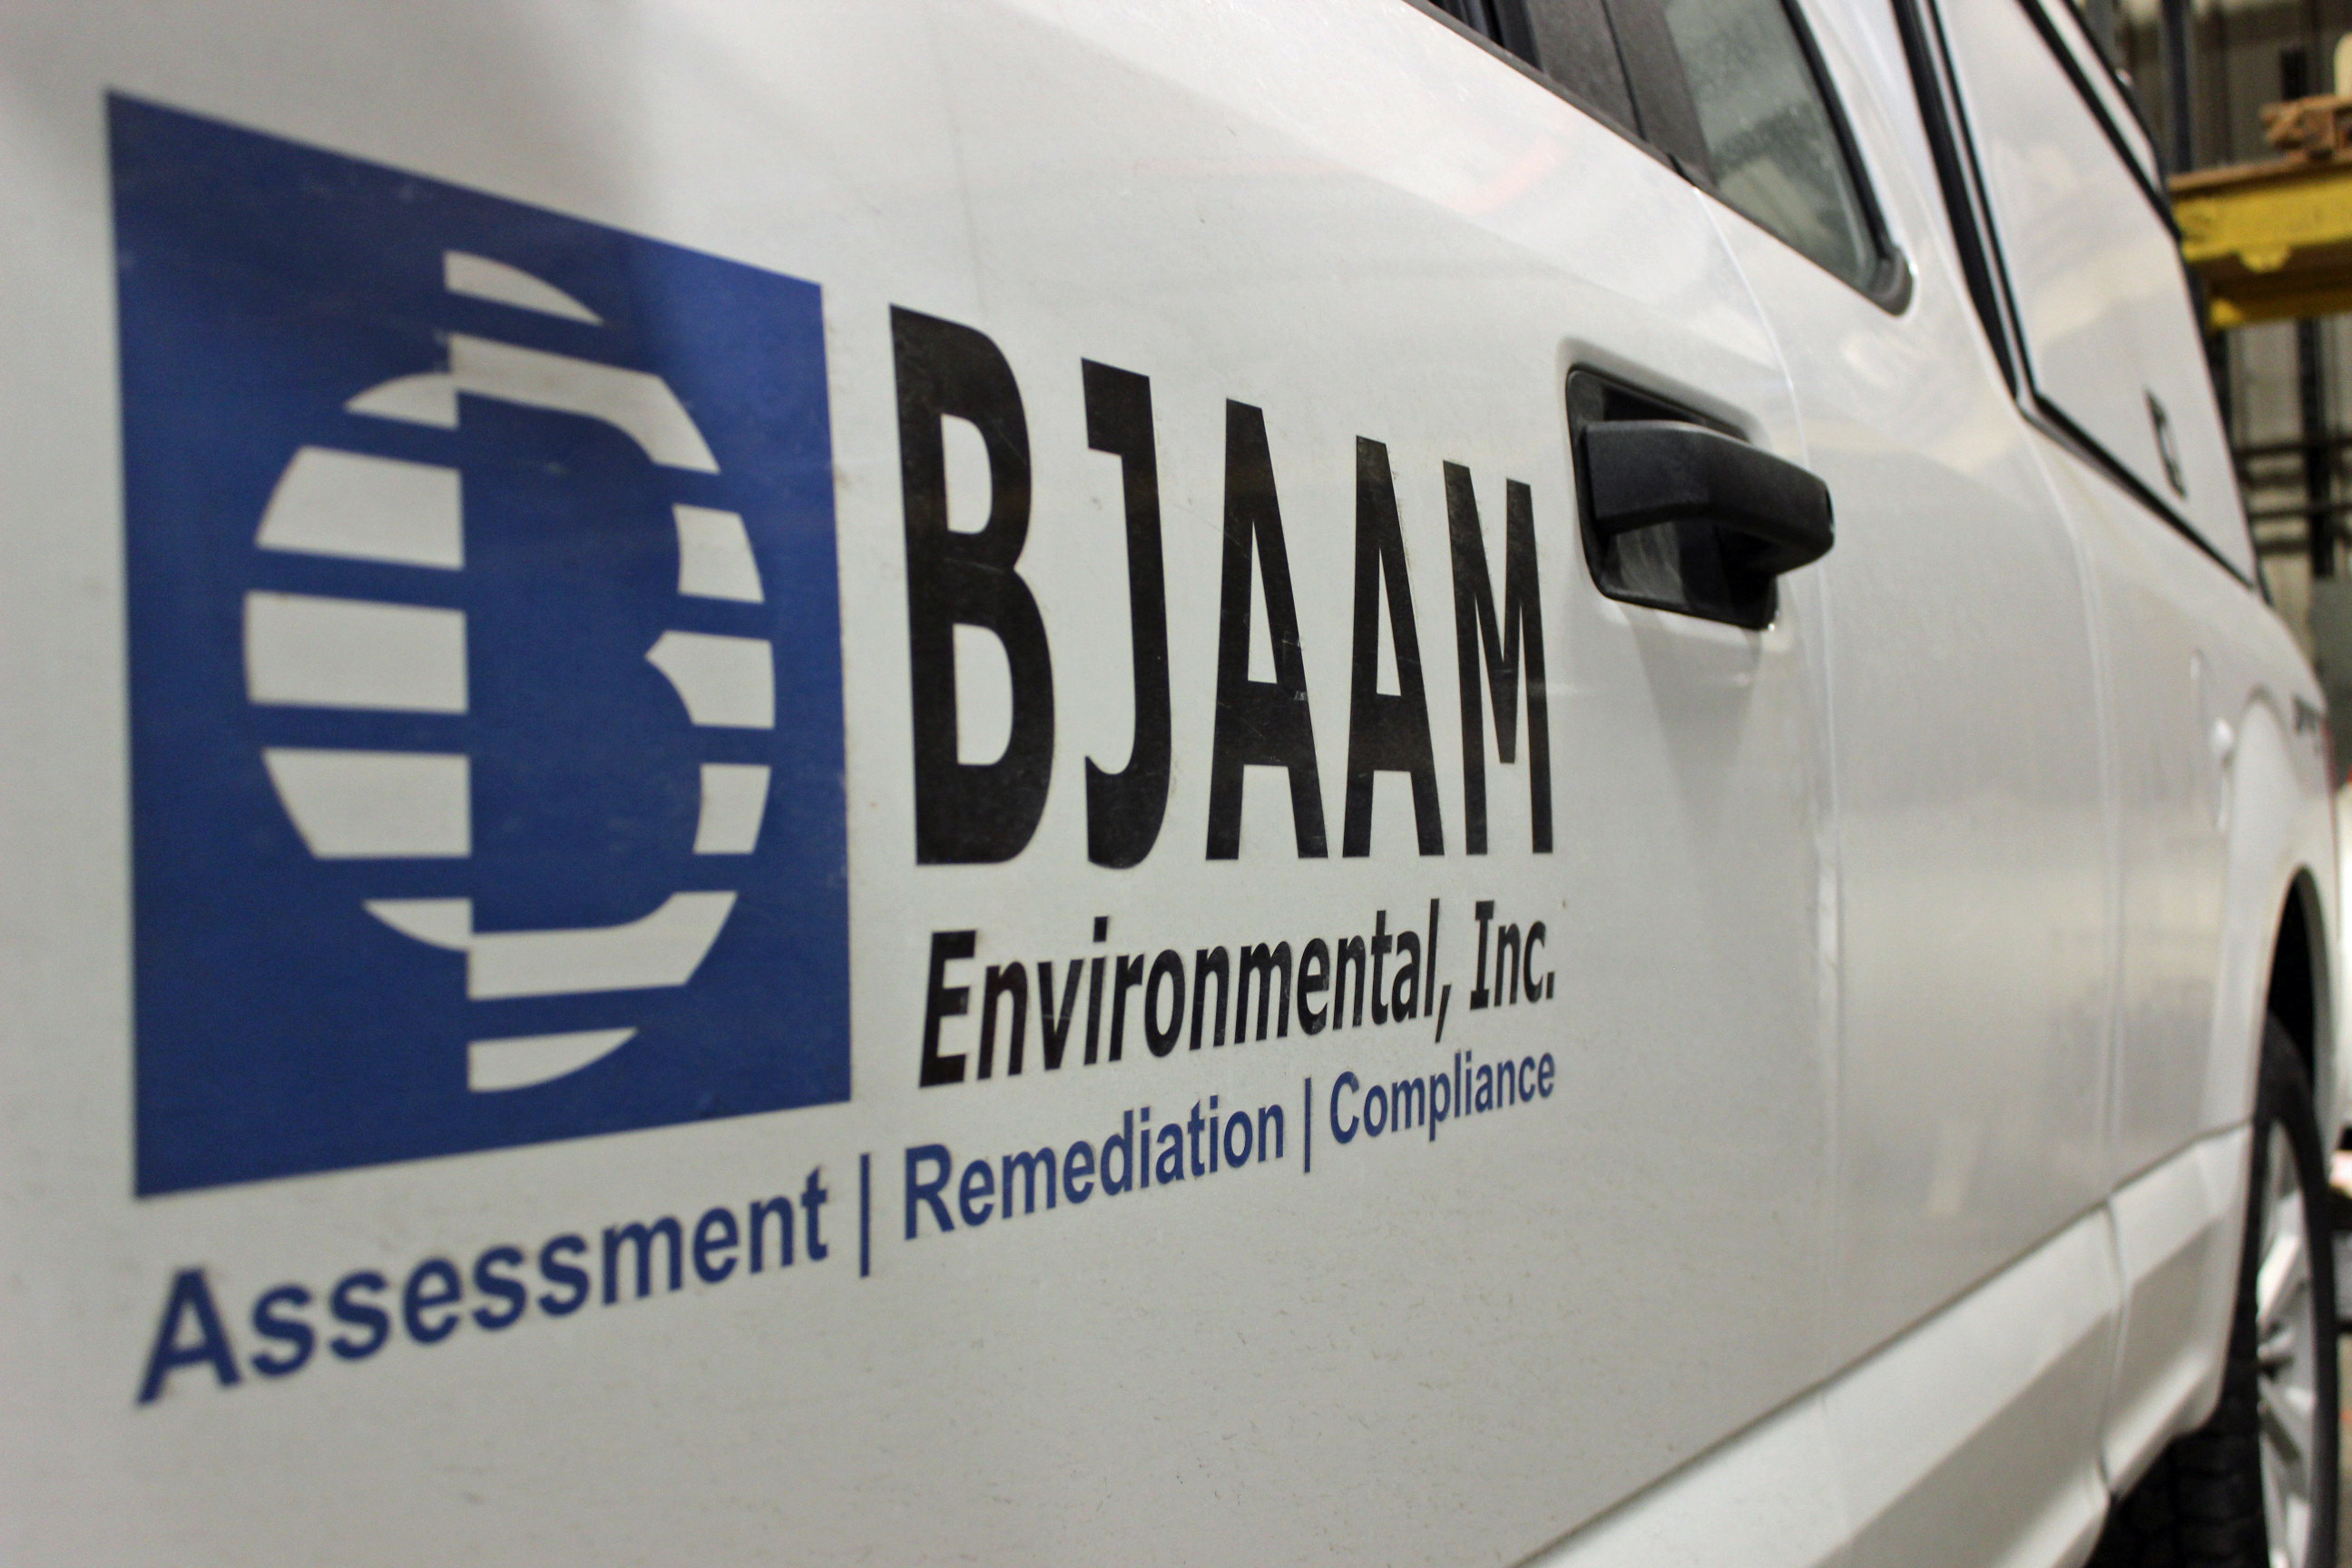 White pickup truck with BJAAM logo on the door